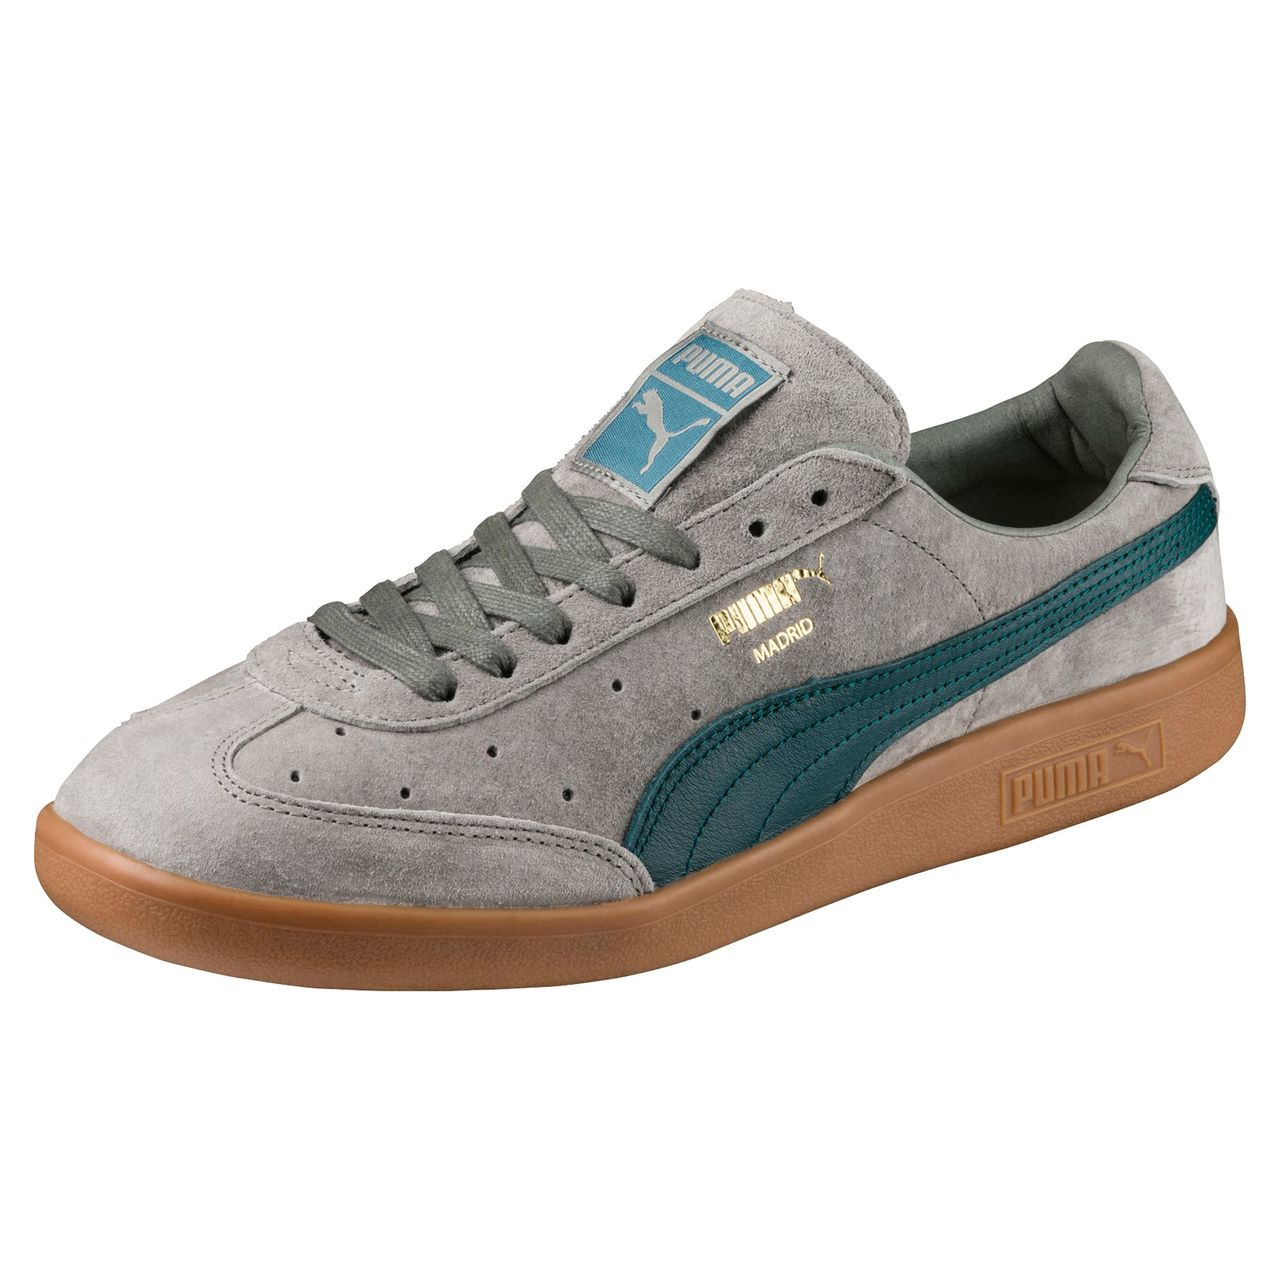 Puma MADRID 2L AGAVE GREEN DEEP TEAL GOLD